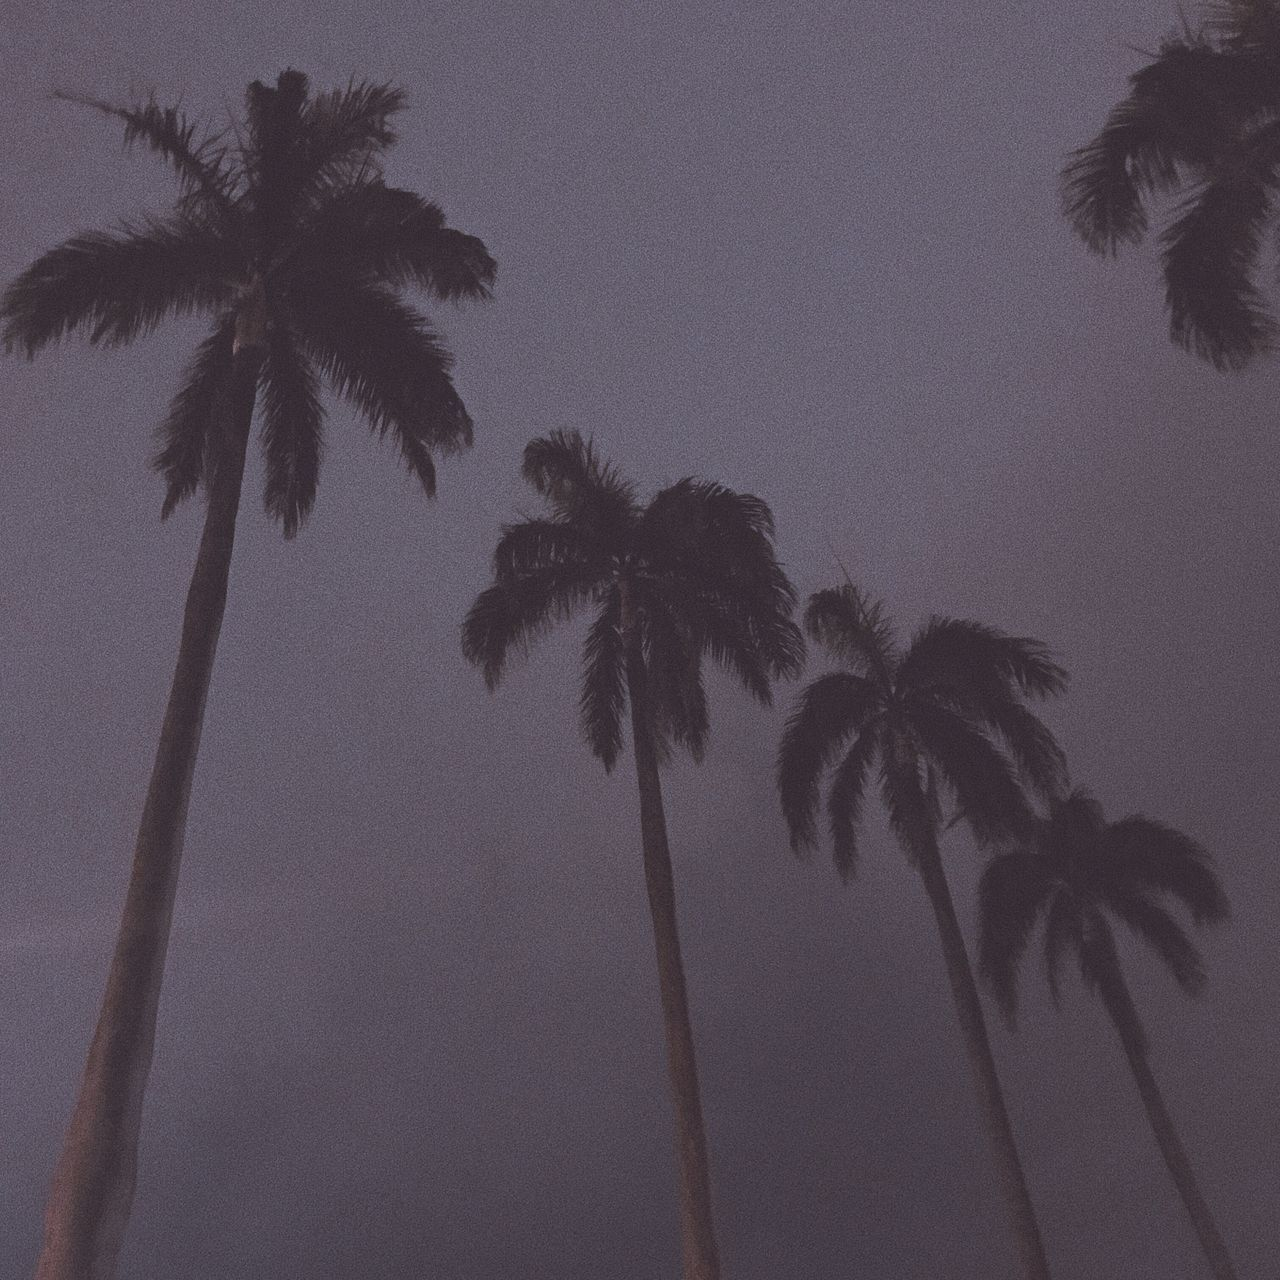 palm tree, tree, tree trunk, tropical climate, low angle view, beach, palm frond, scenics, nature, growth, silhouette, tranquility, no people, beauty in nature, sky, outdoors, tall, tranquil scene, vacations, day, clear sky, travel destinations, summer, sea, adventure